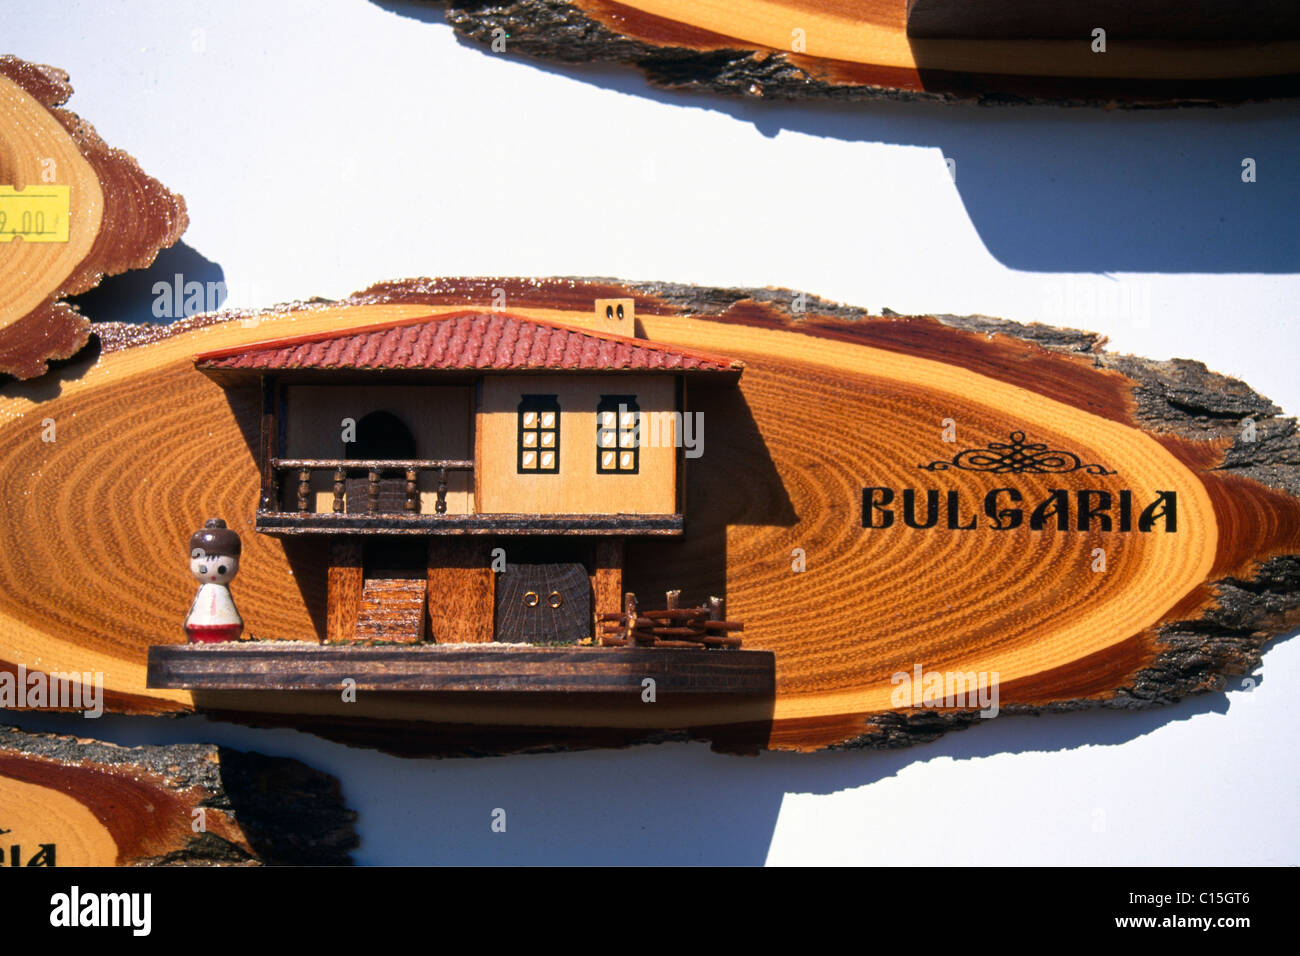 Souvenirs, Nessebar, Black Sea, Bulgaria, Southeastern Europe - Stock Image